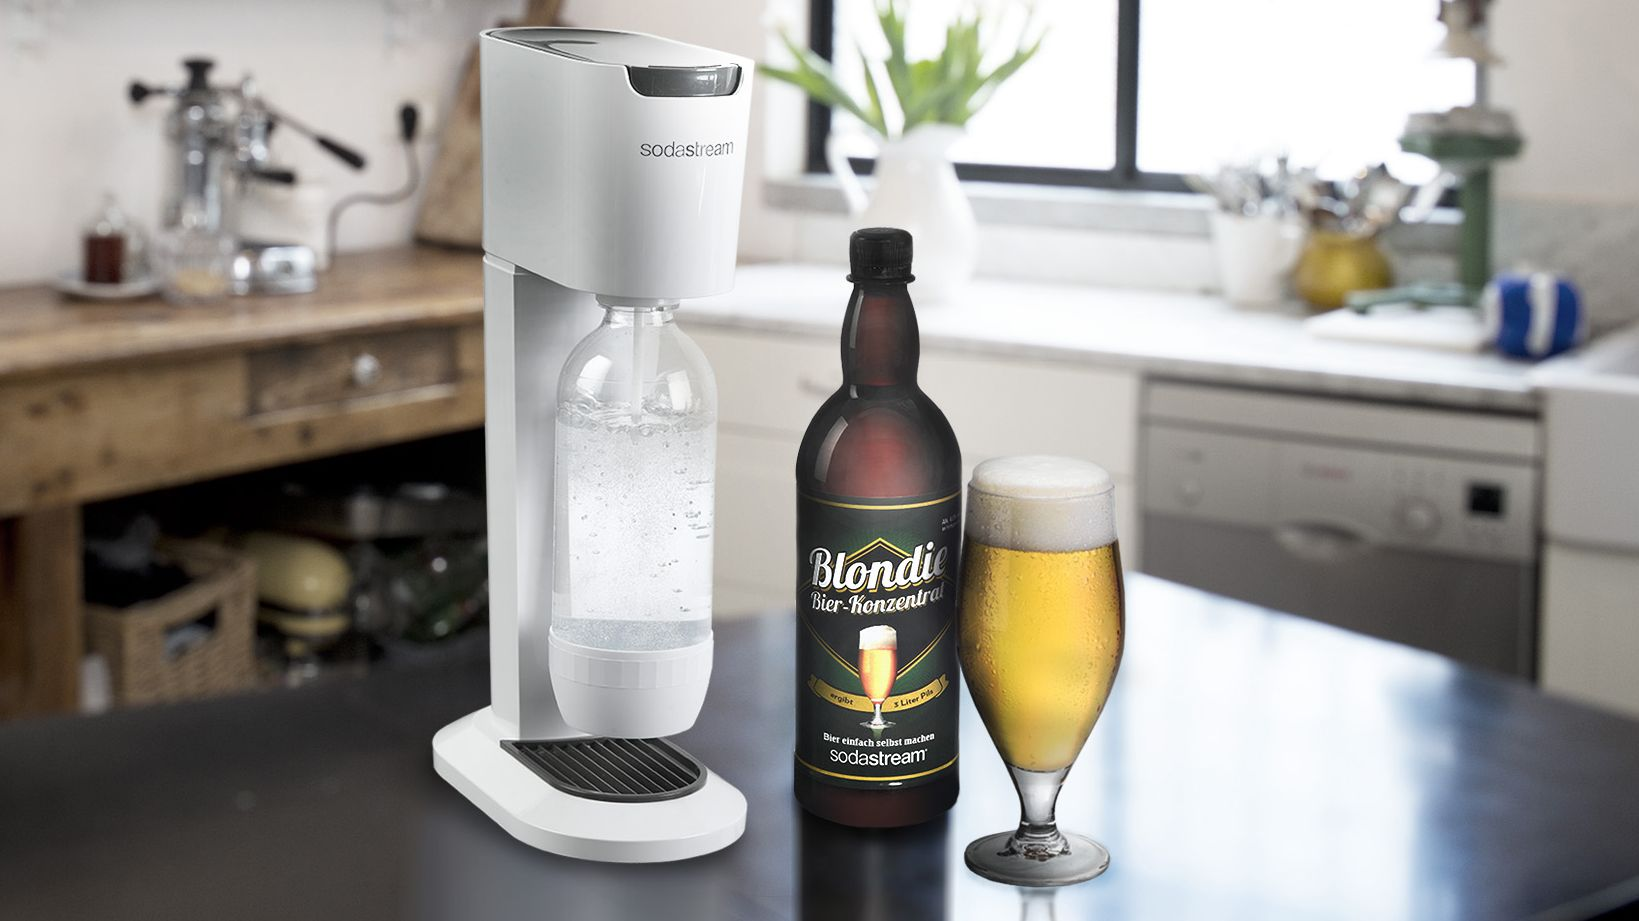 sodastream-beer-bar